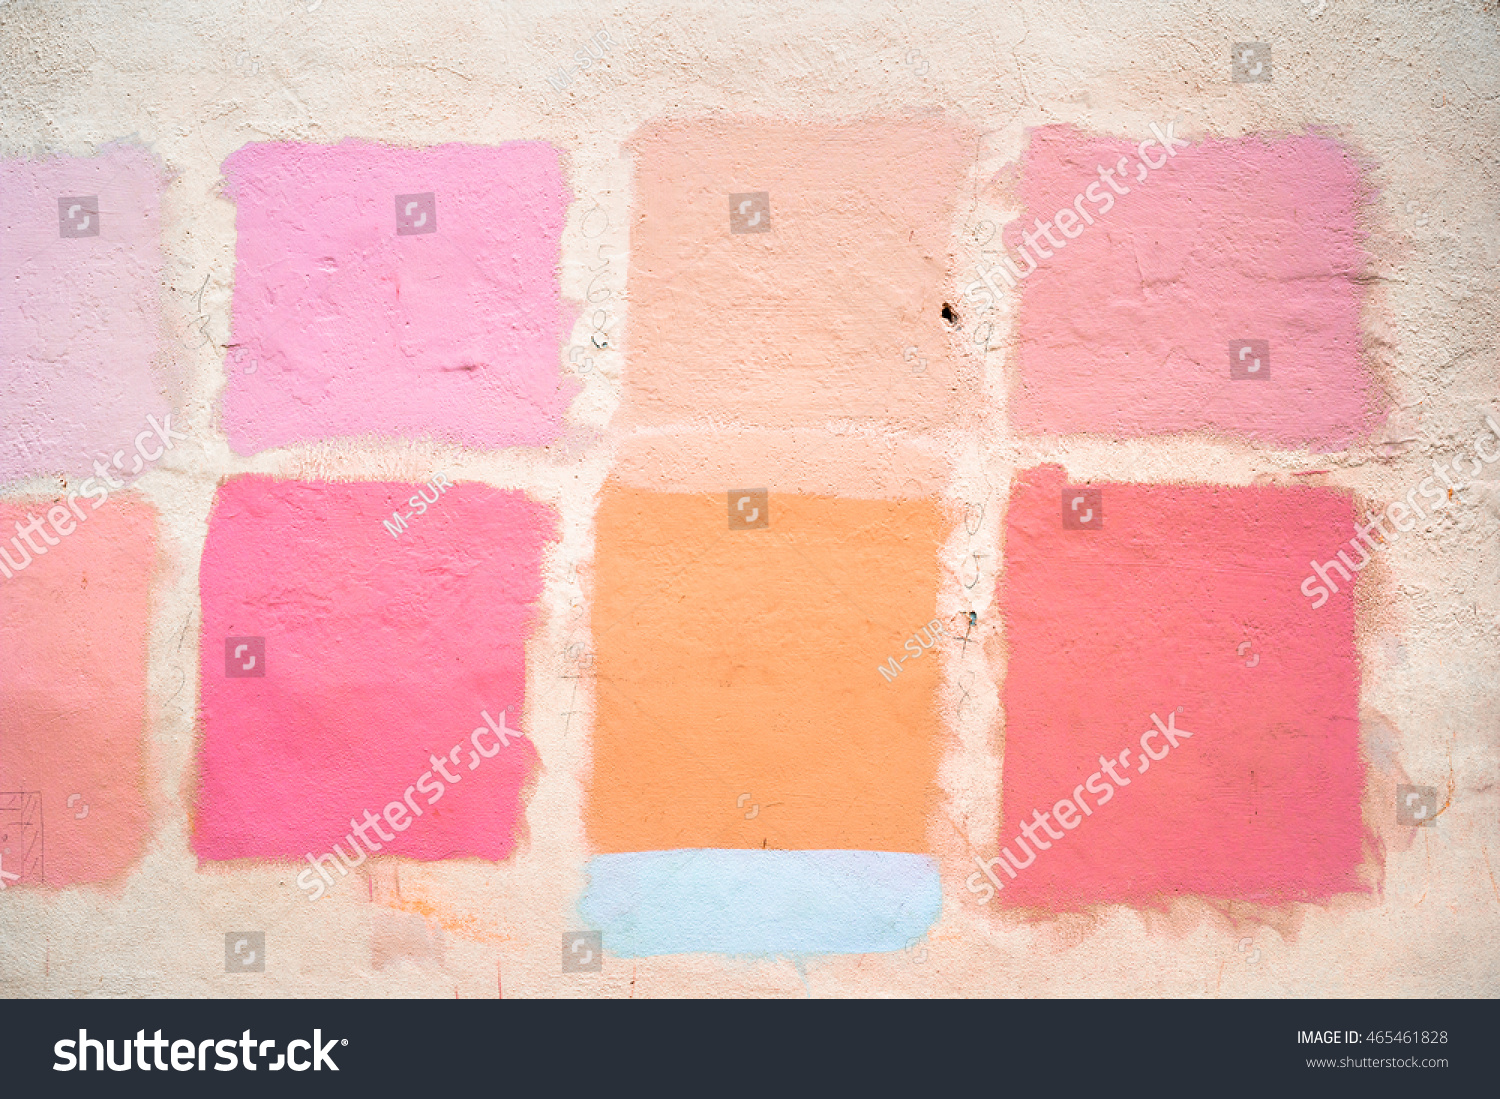 Picking Color Colour On Plastered Wall Stock Photo (Edit Now ...